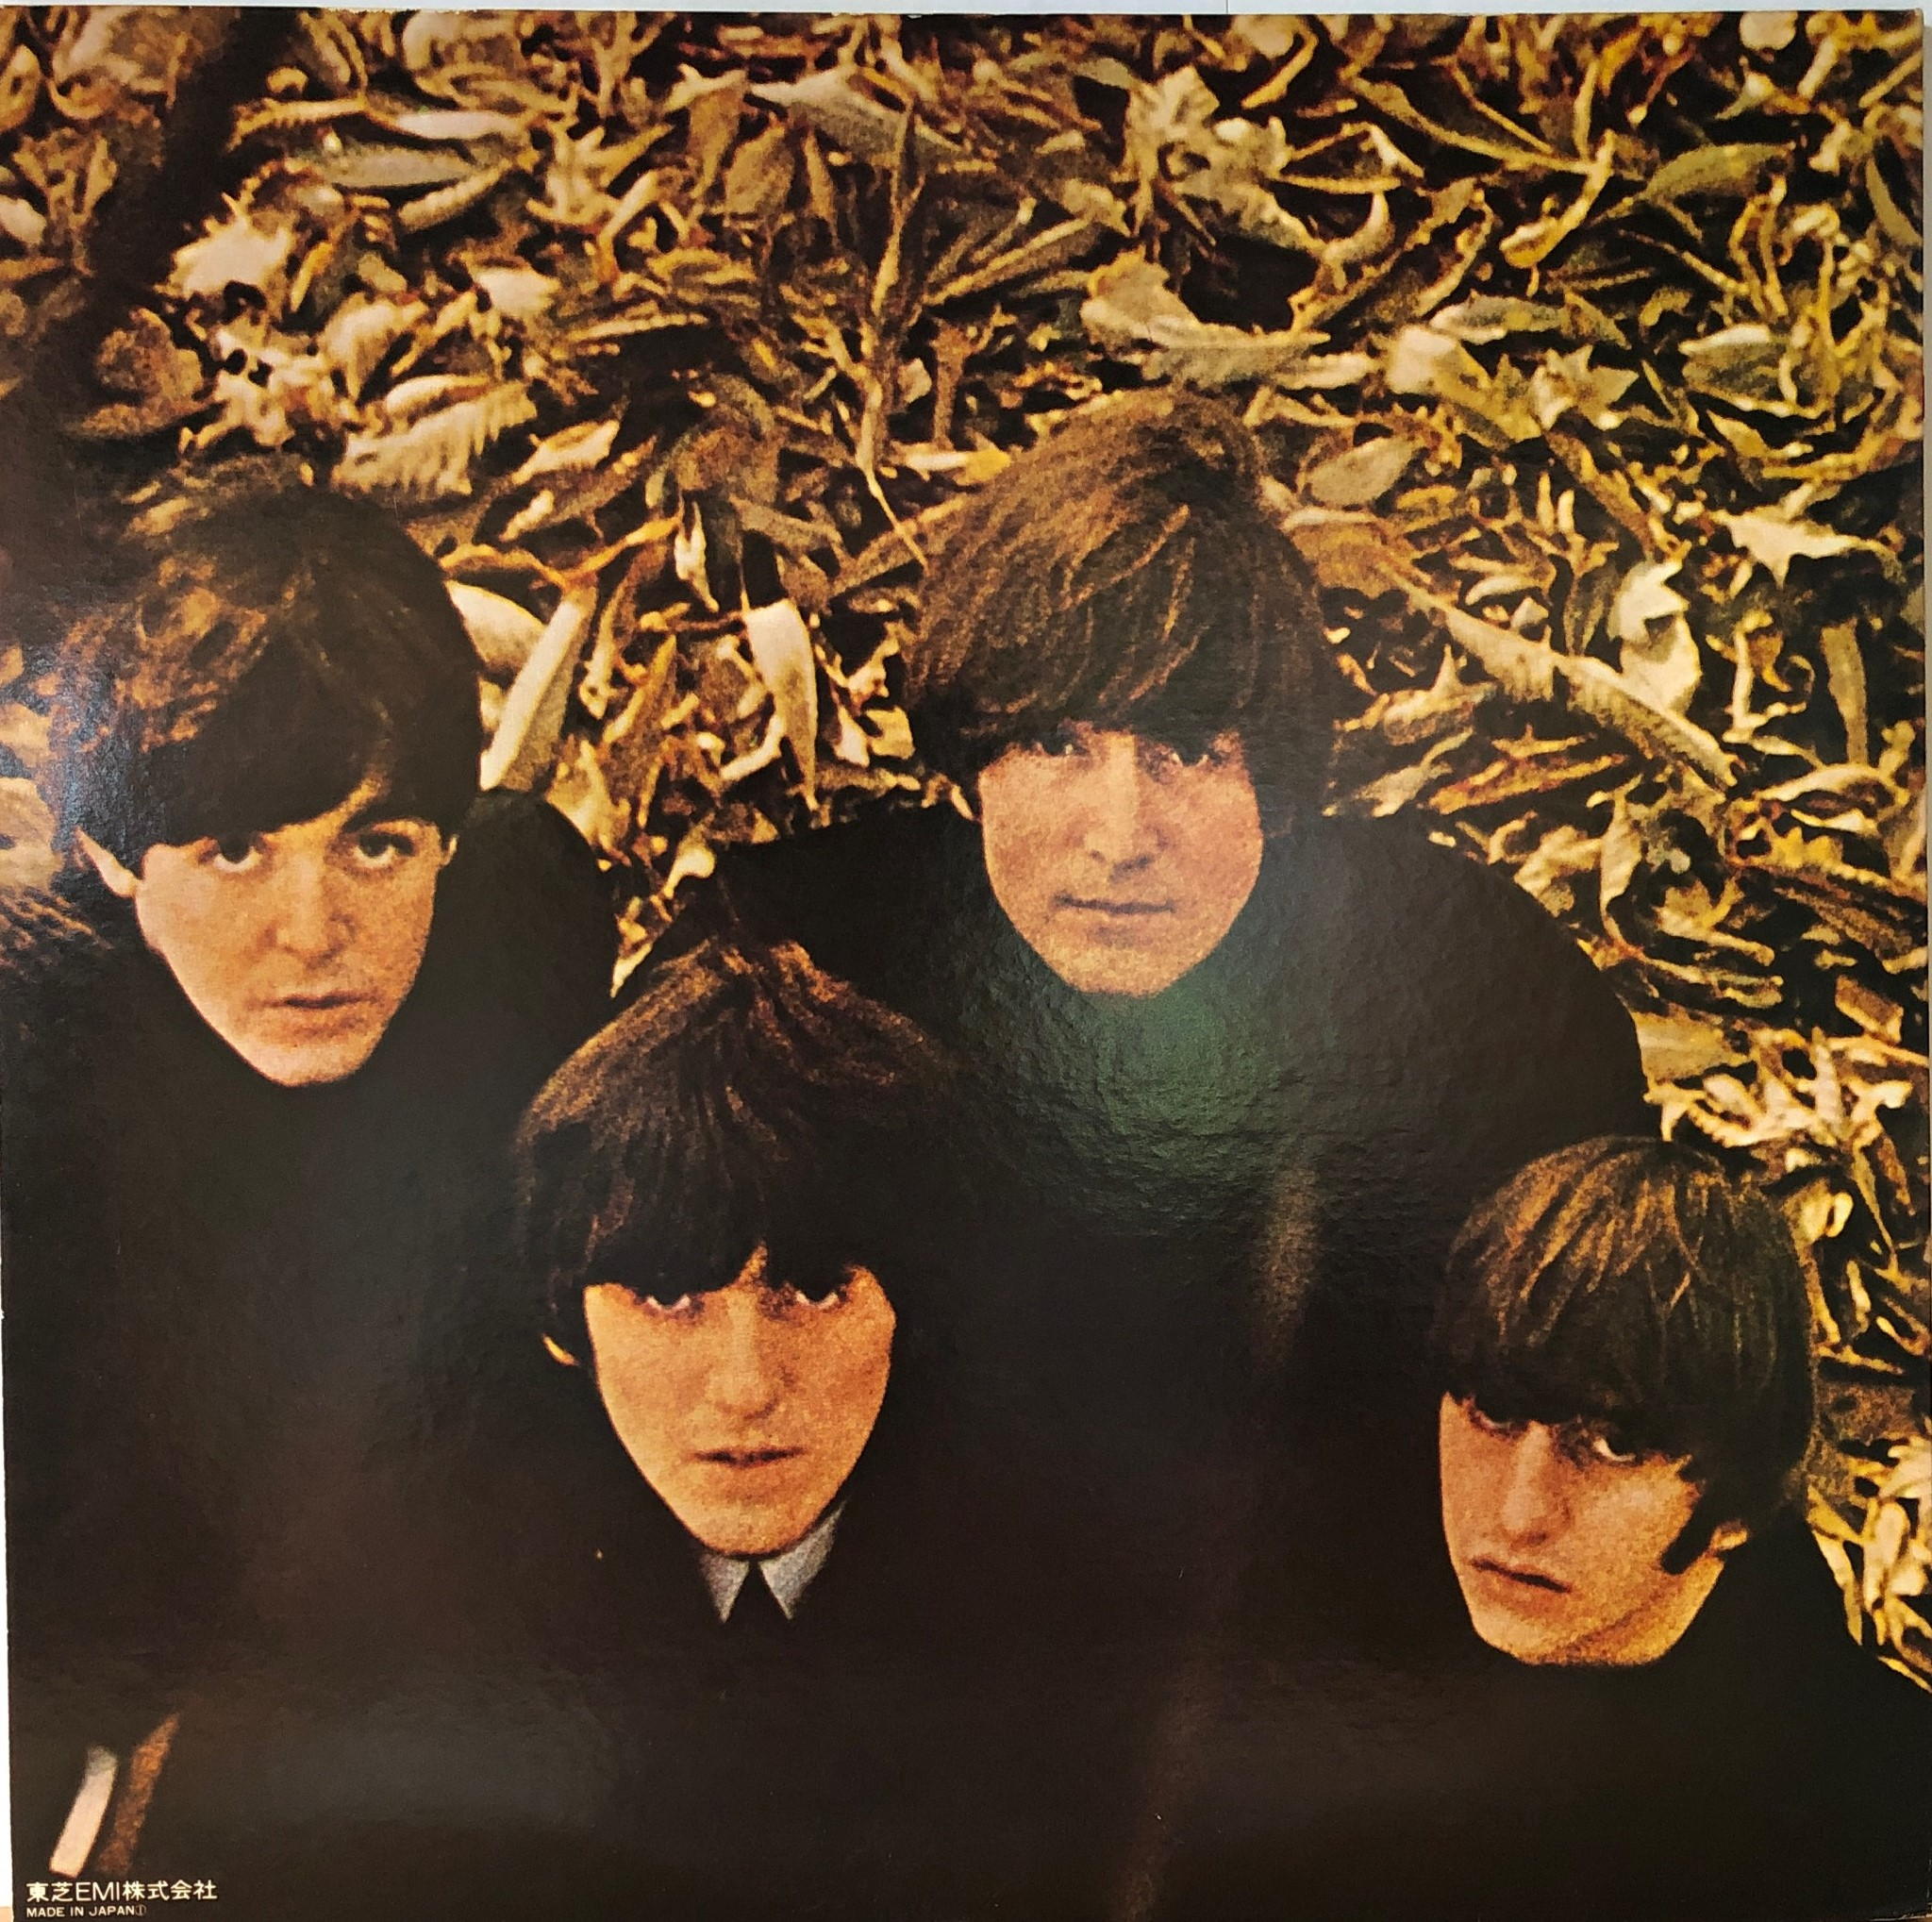 Lot 281: Meet the Beatles album, signed by all 4 members